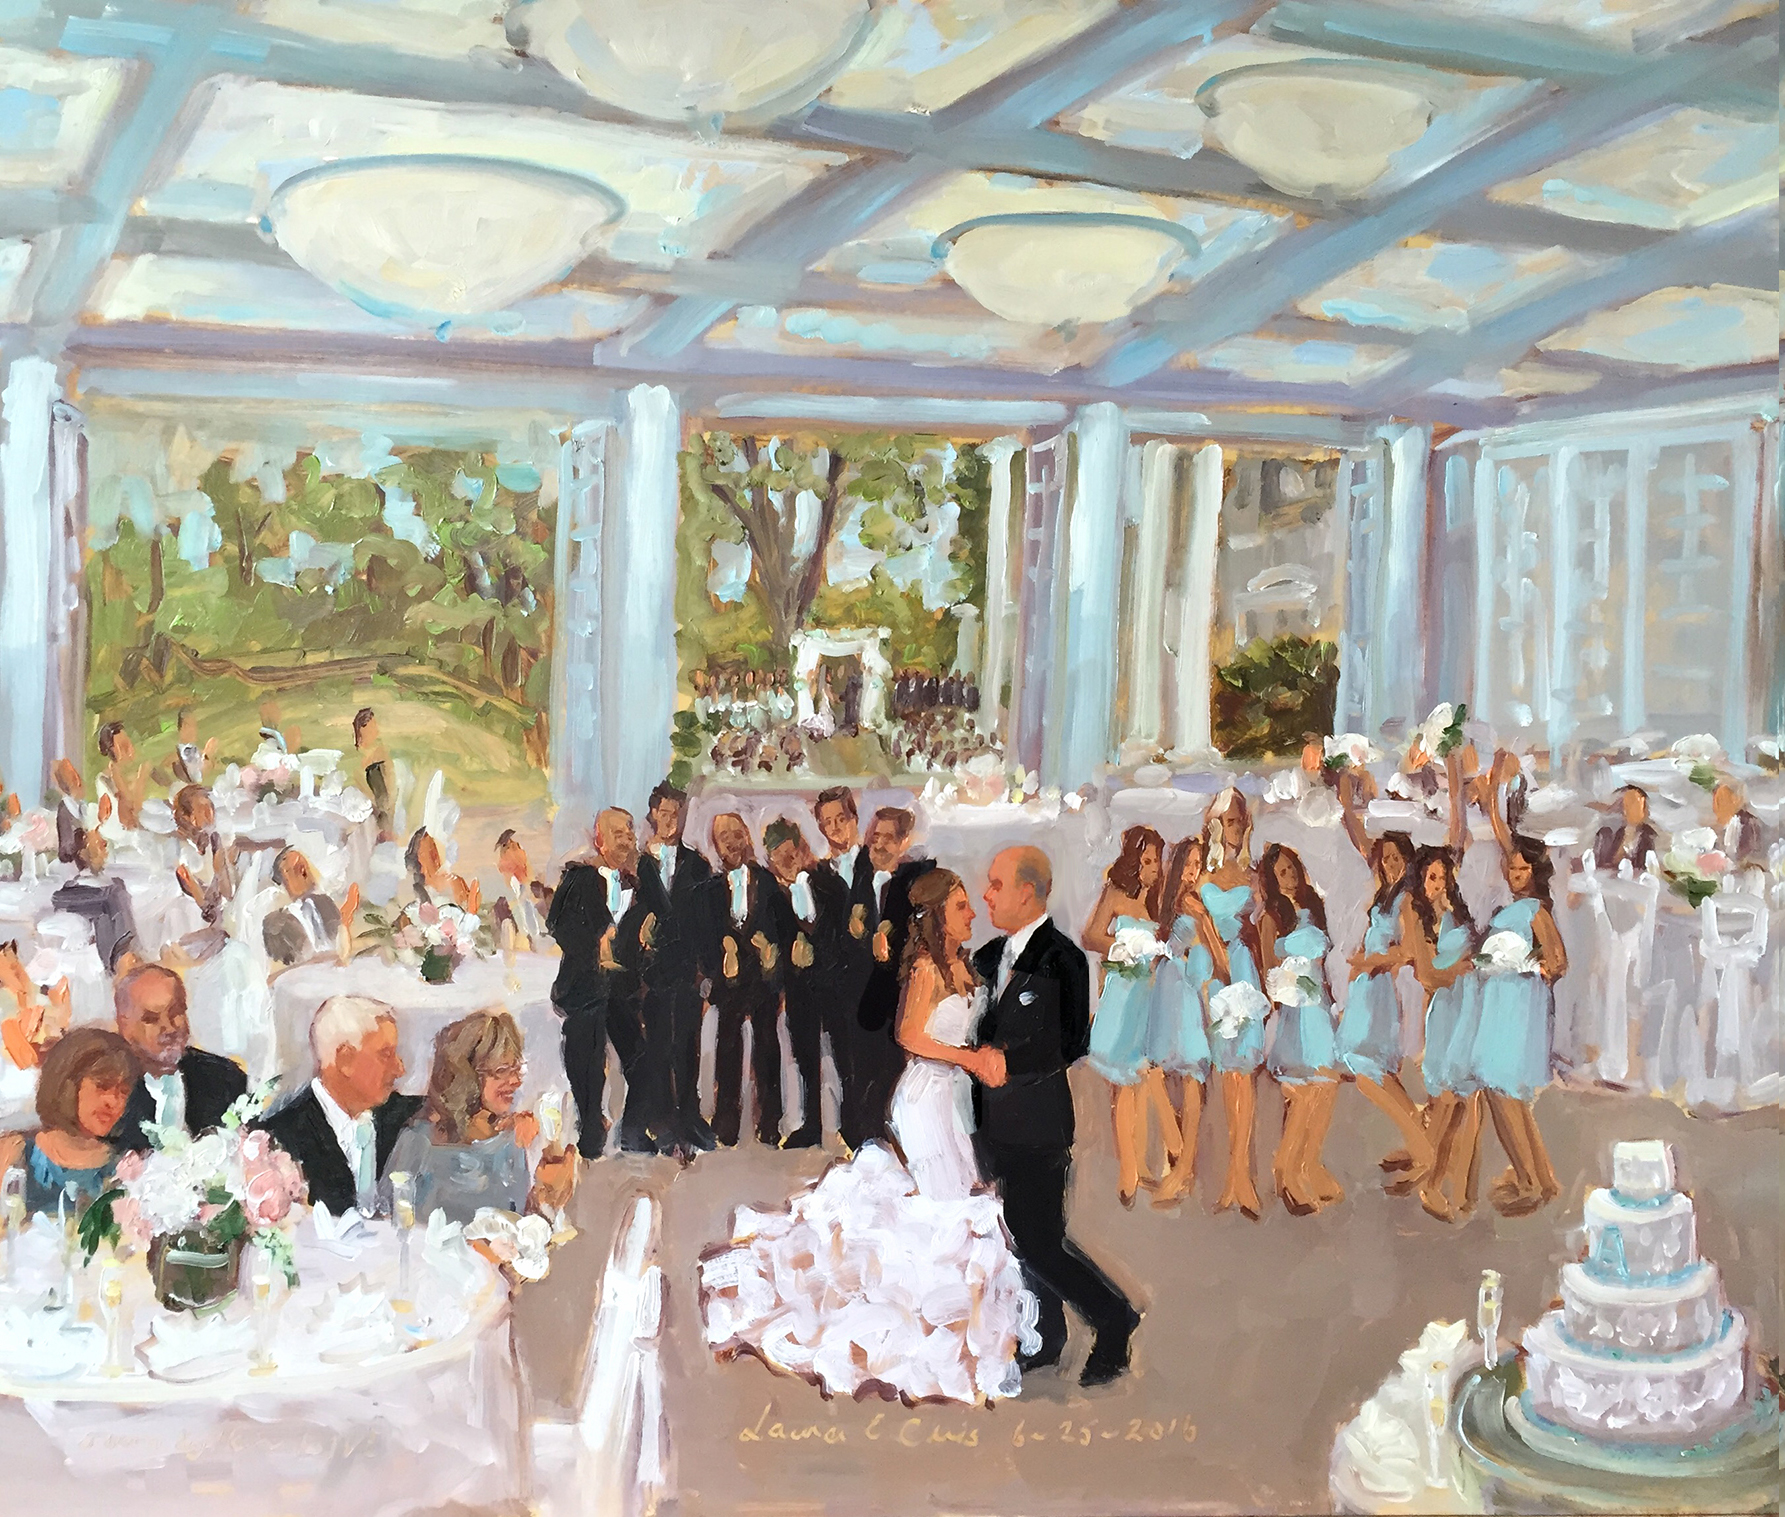 Radnor Valley Country Club Wedding Previous Next List Celebrations Captured In A Live Event Painting As They Were Hening By The